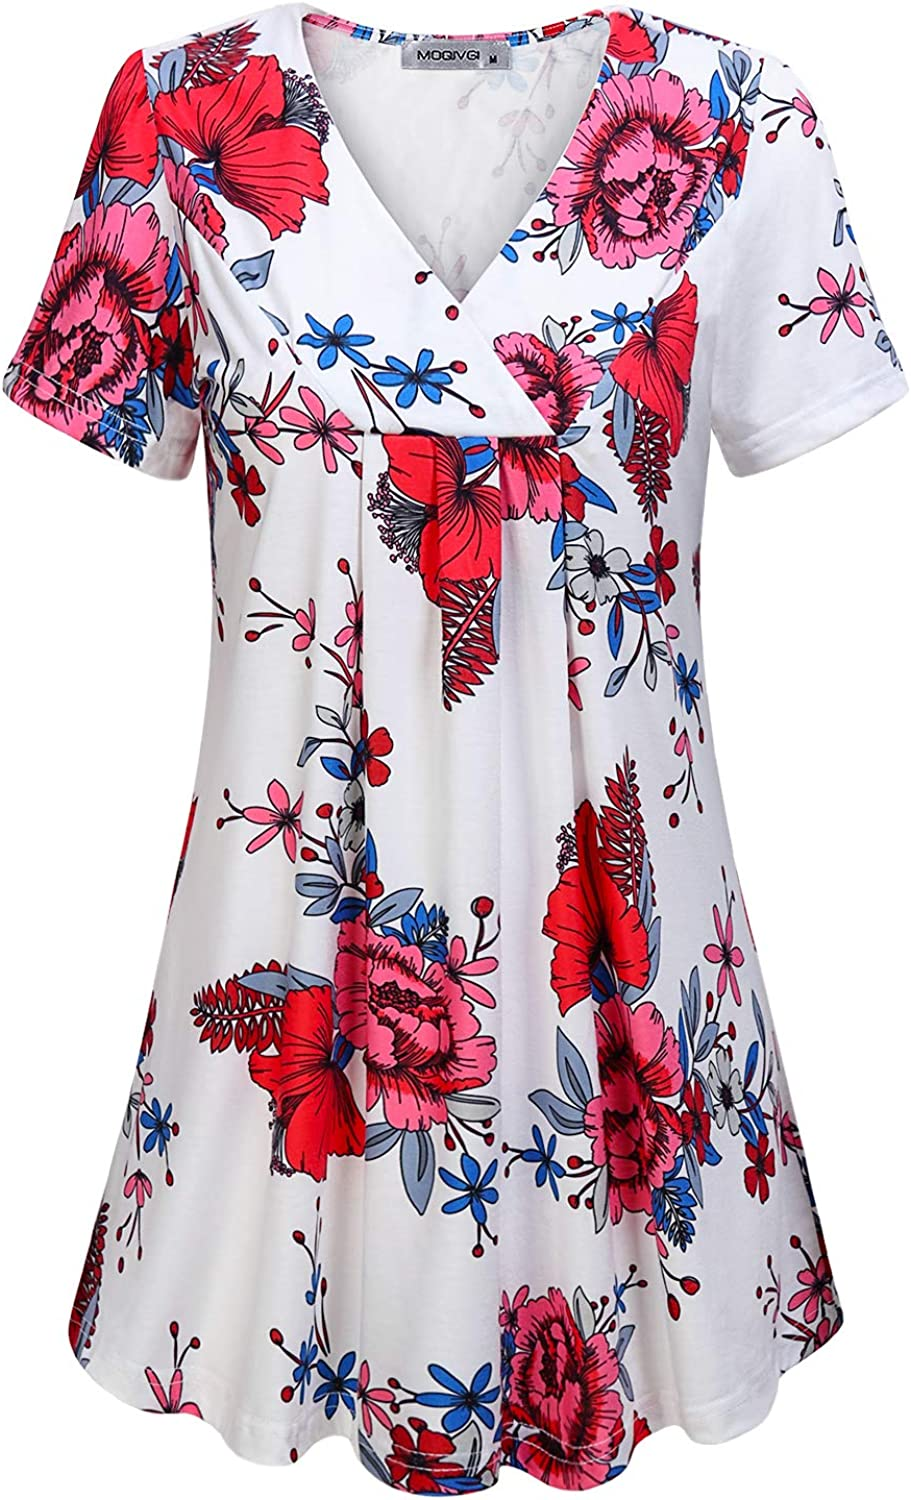 Special price for a limited time MOQIVGI Womens V Neck Printed Loose Top Blouse In stock Casual Tunic Fit